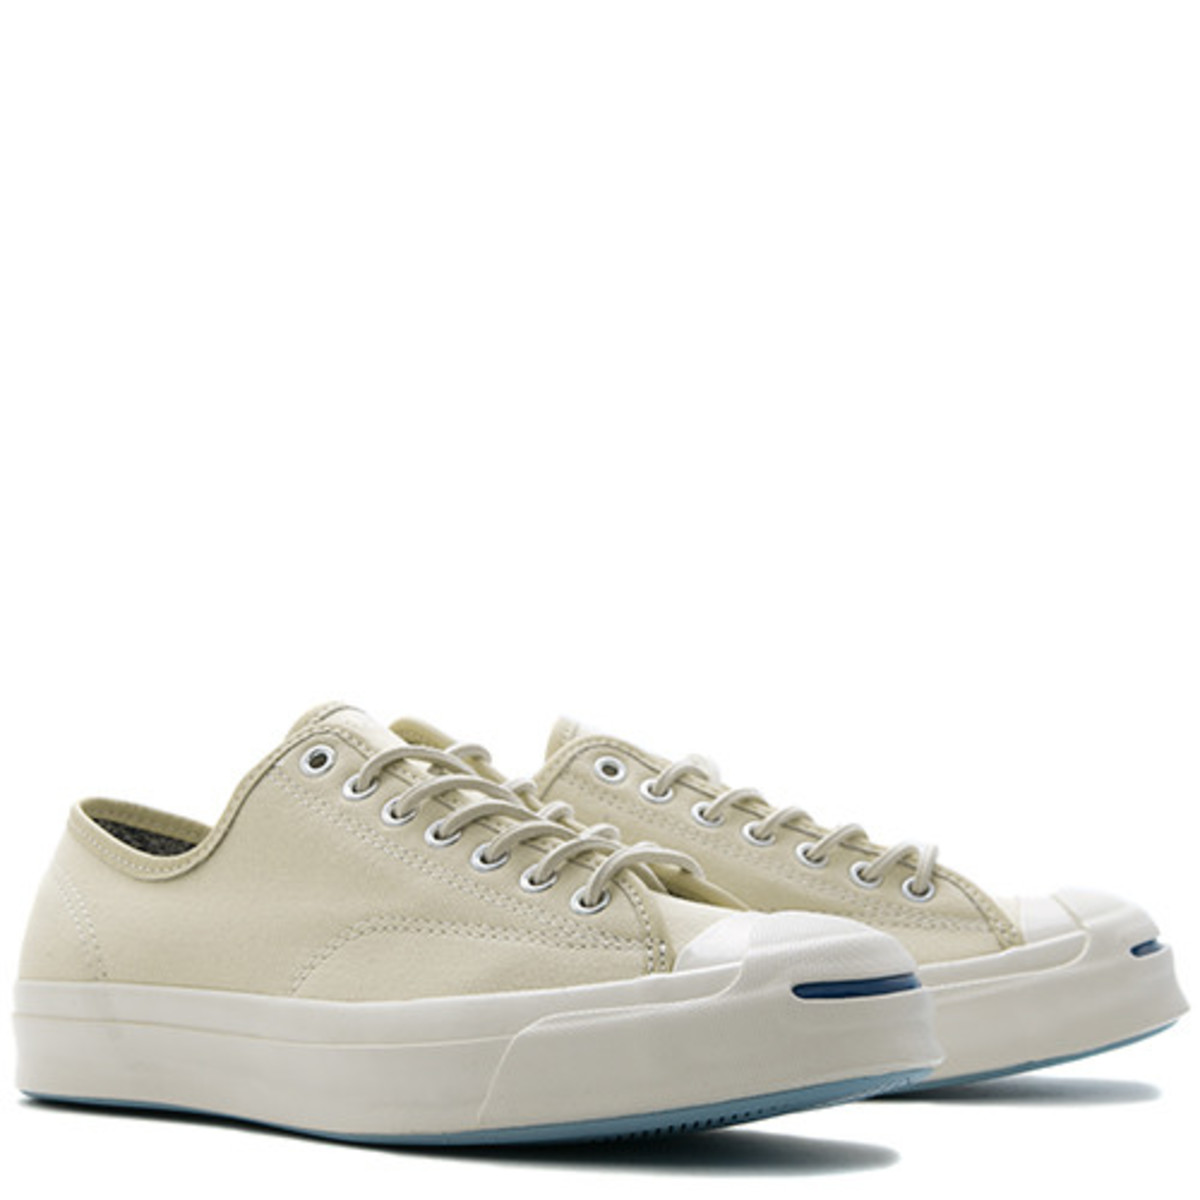 2a6835912524 CONVERSE JACK PURCELL SIGNATURE SHIELD CANVAS OX   NATURAL